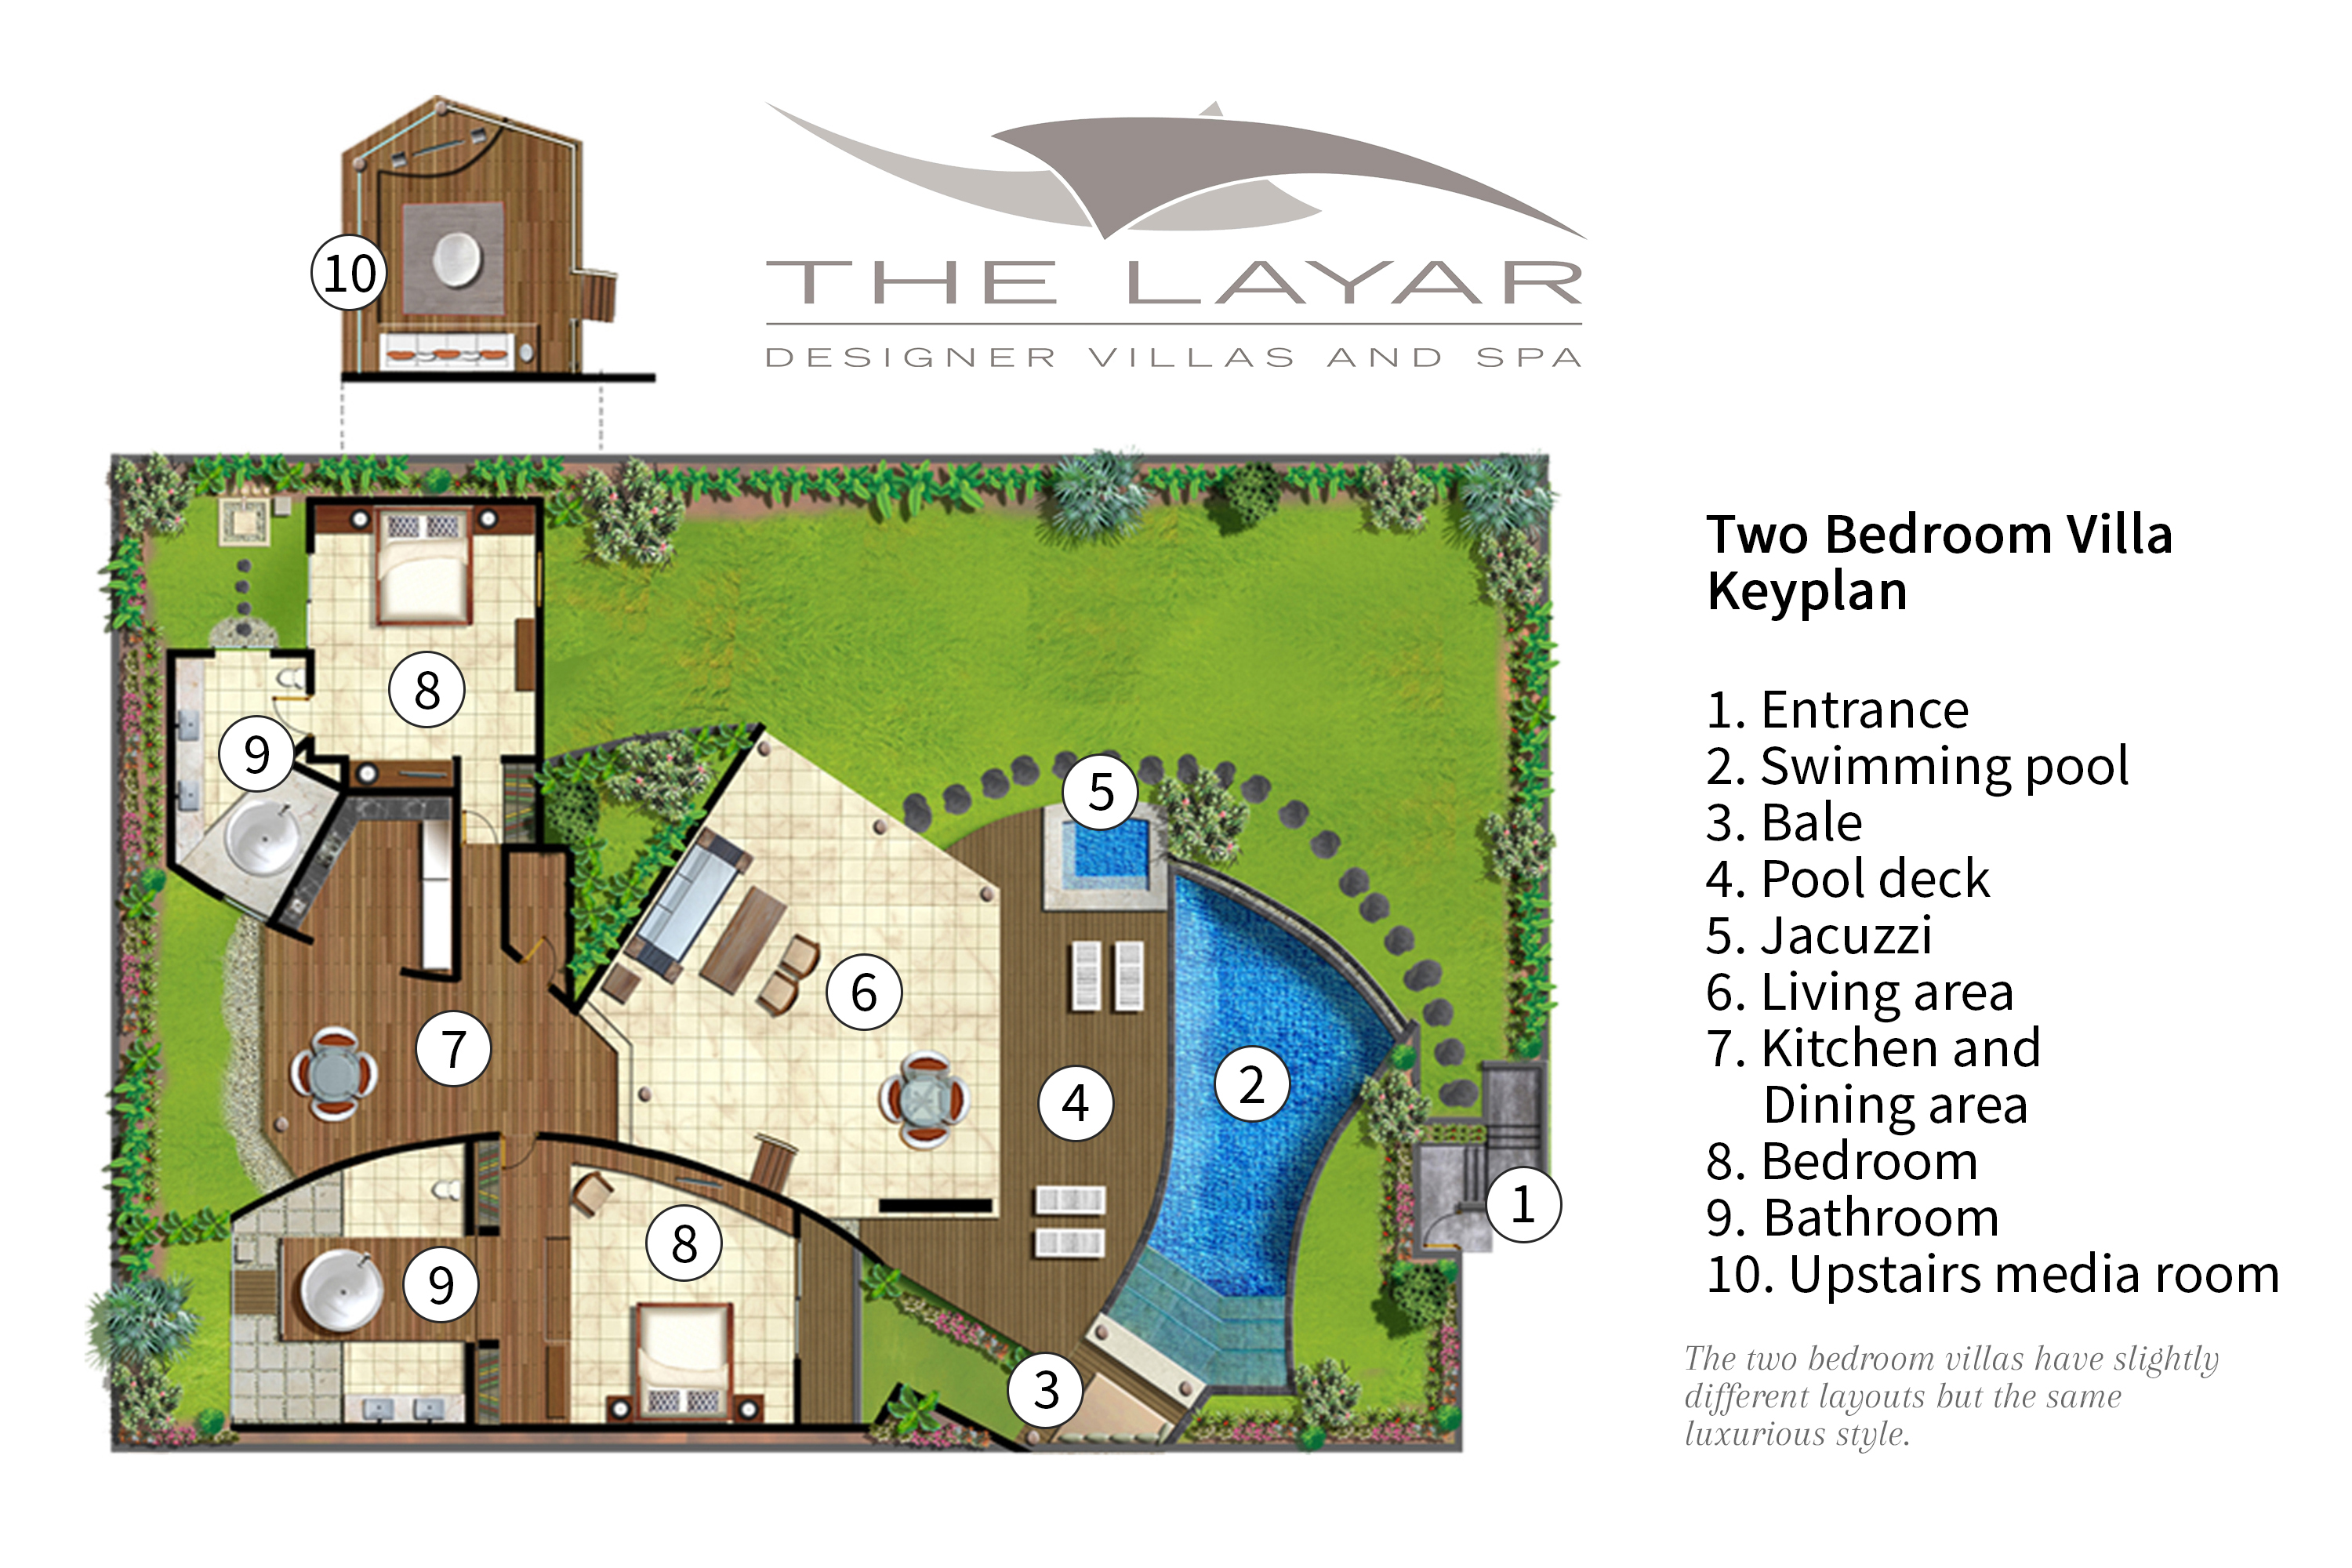 The Layar - two bedroom villa